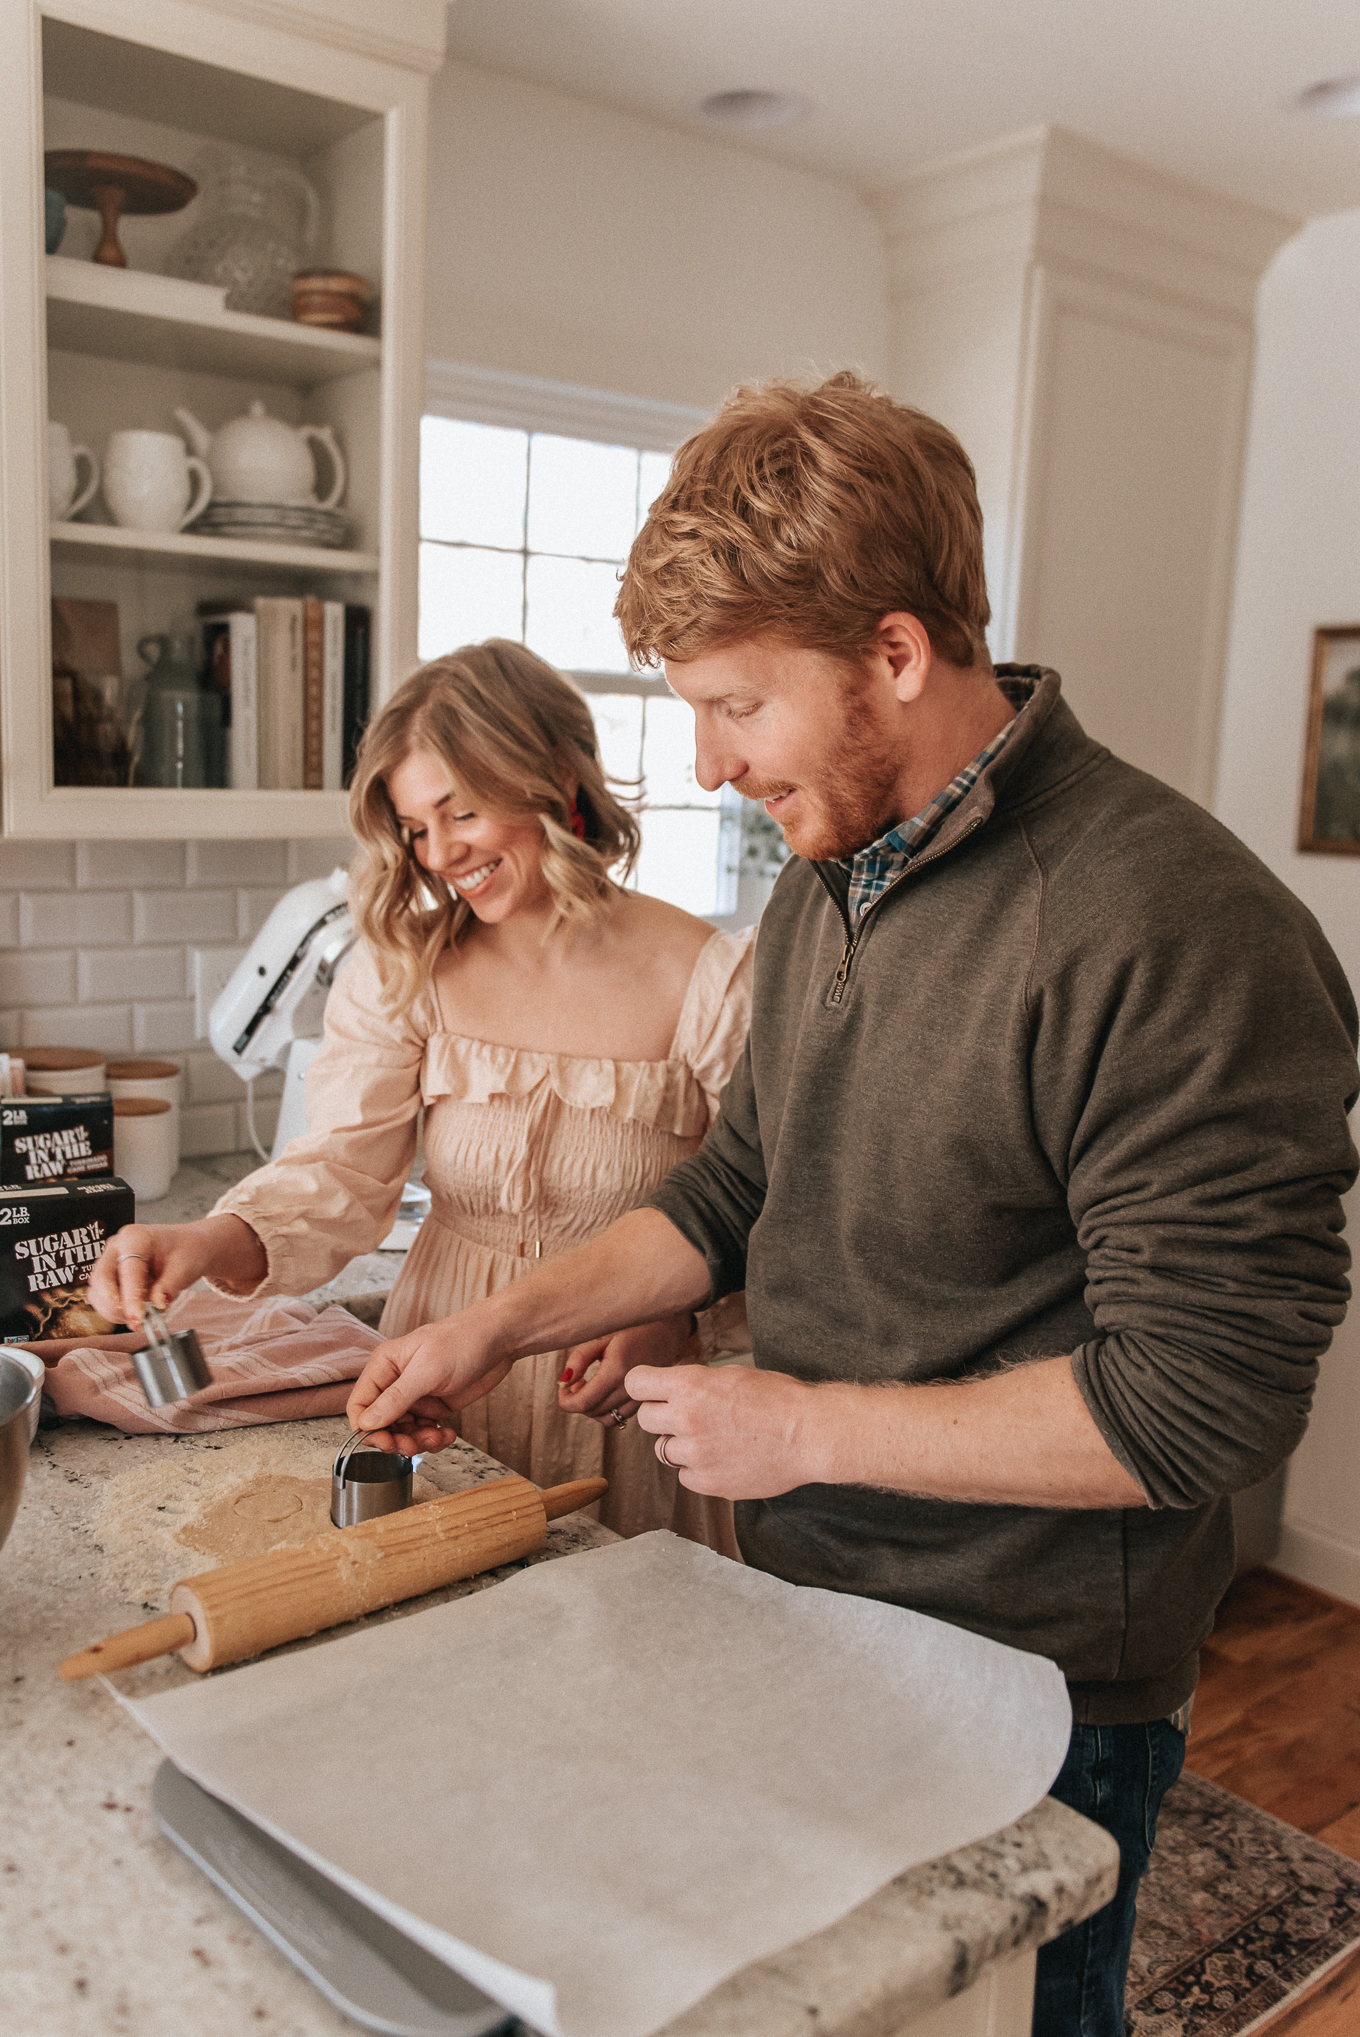 At Home Date Night Idea - Bake-Off | lifestyle | Louella Reese